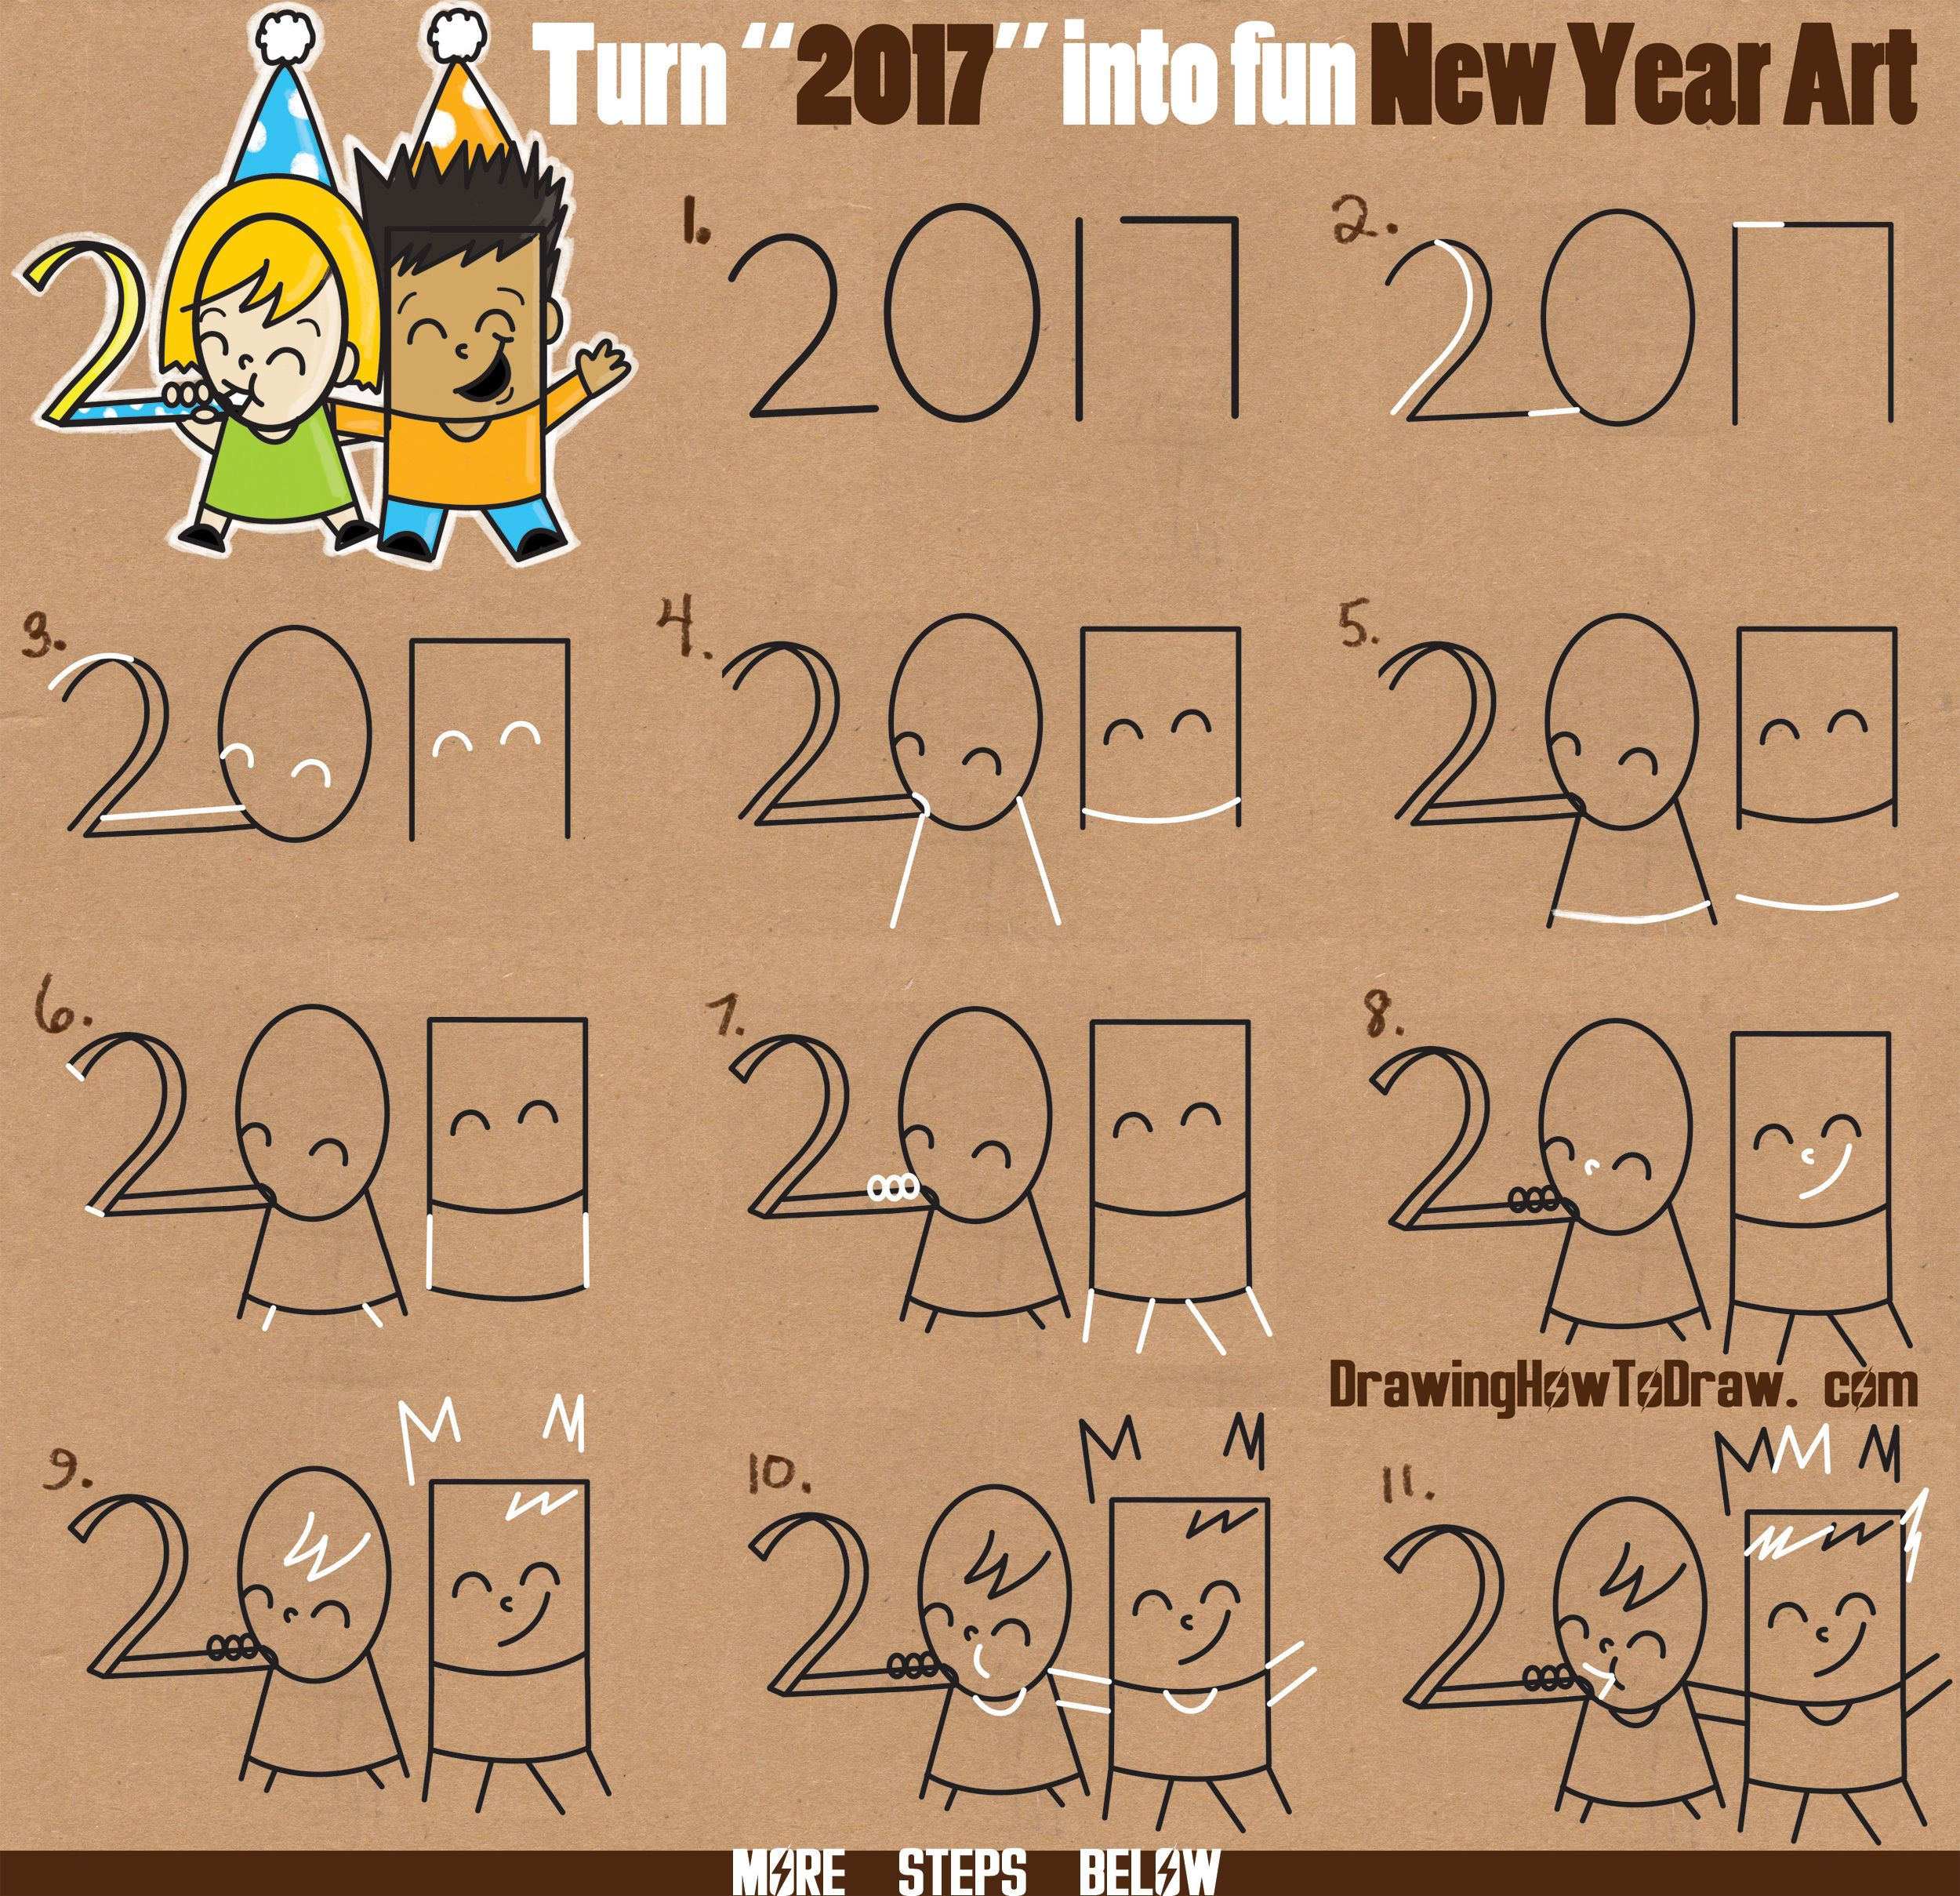 7 letter words for draw something how to draw new years new year word of 25206